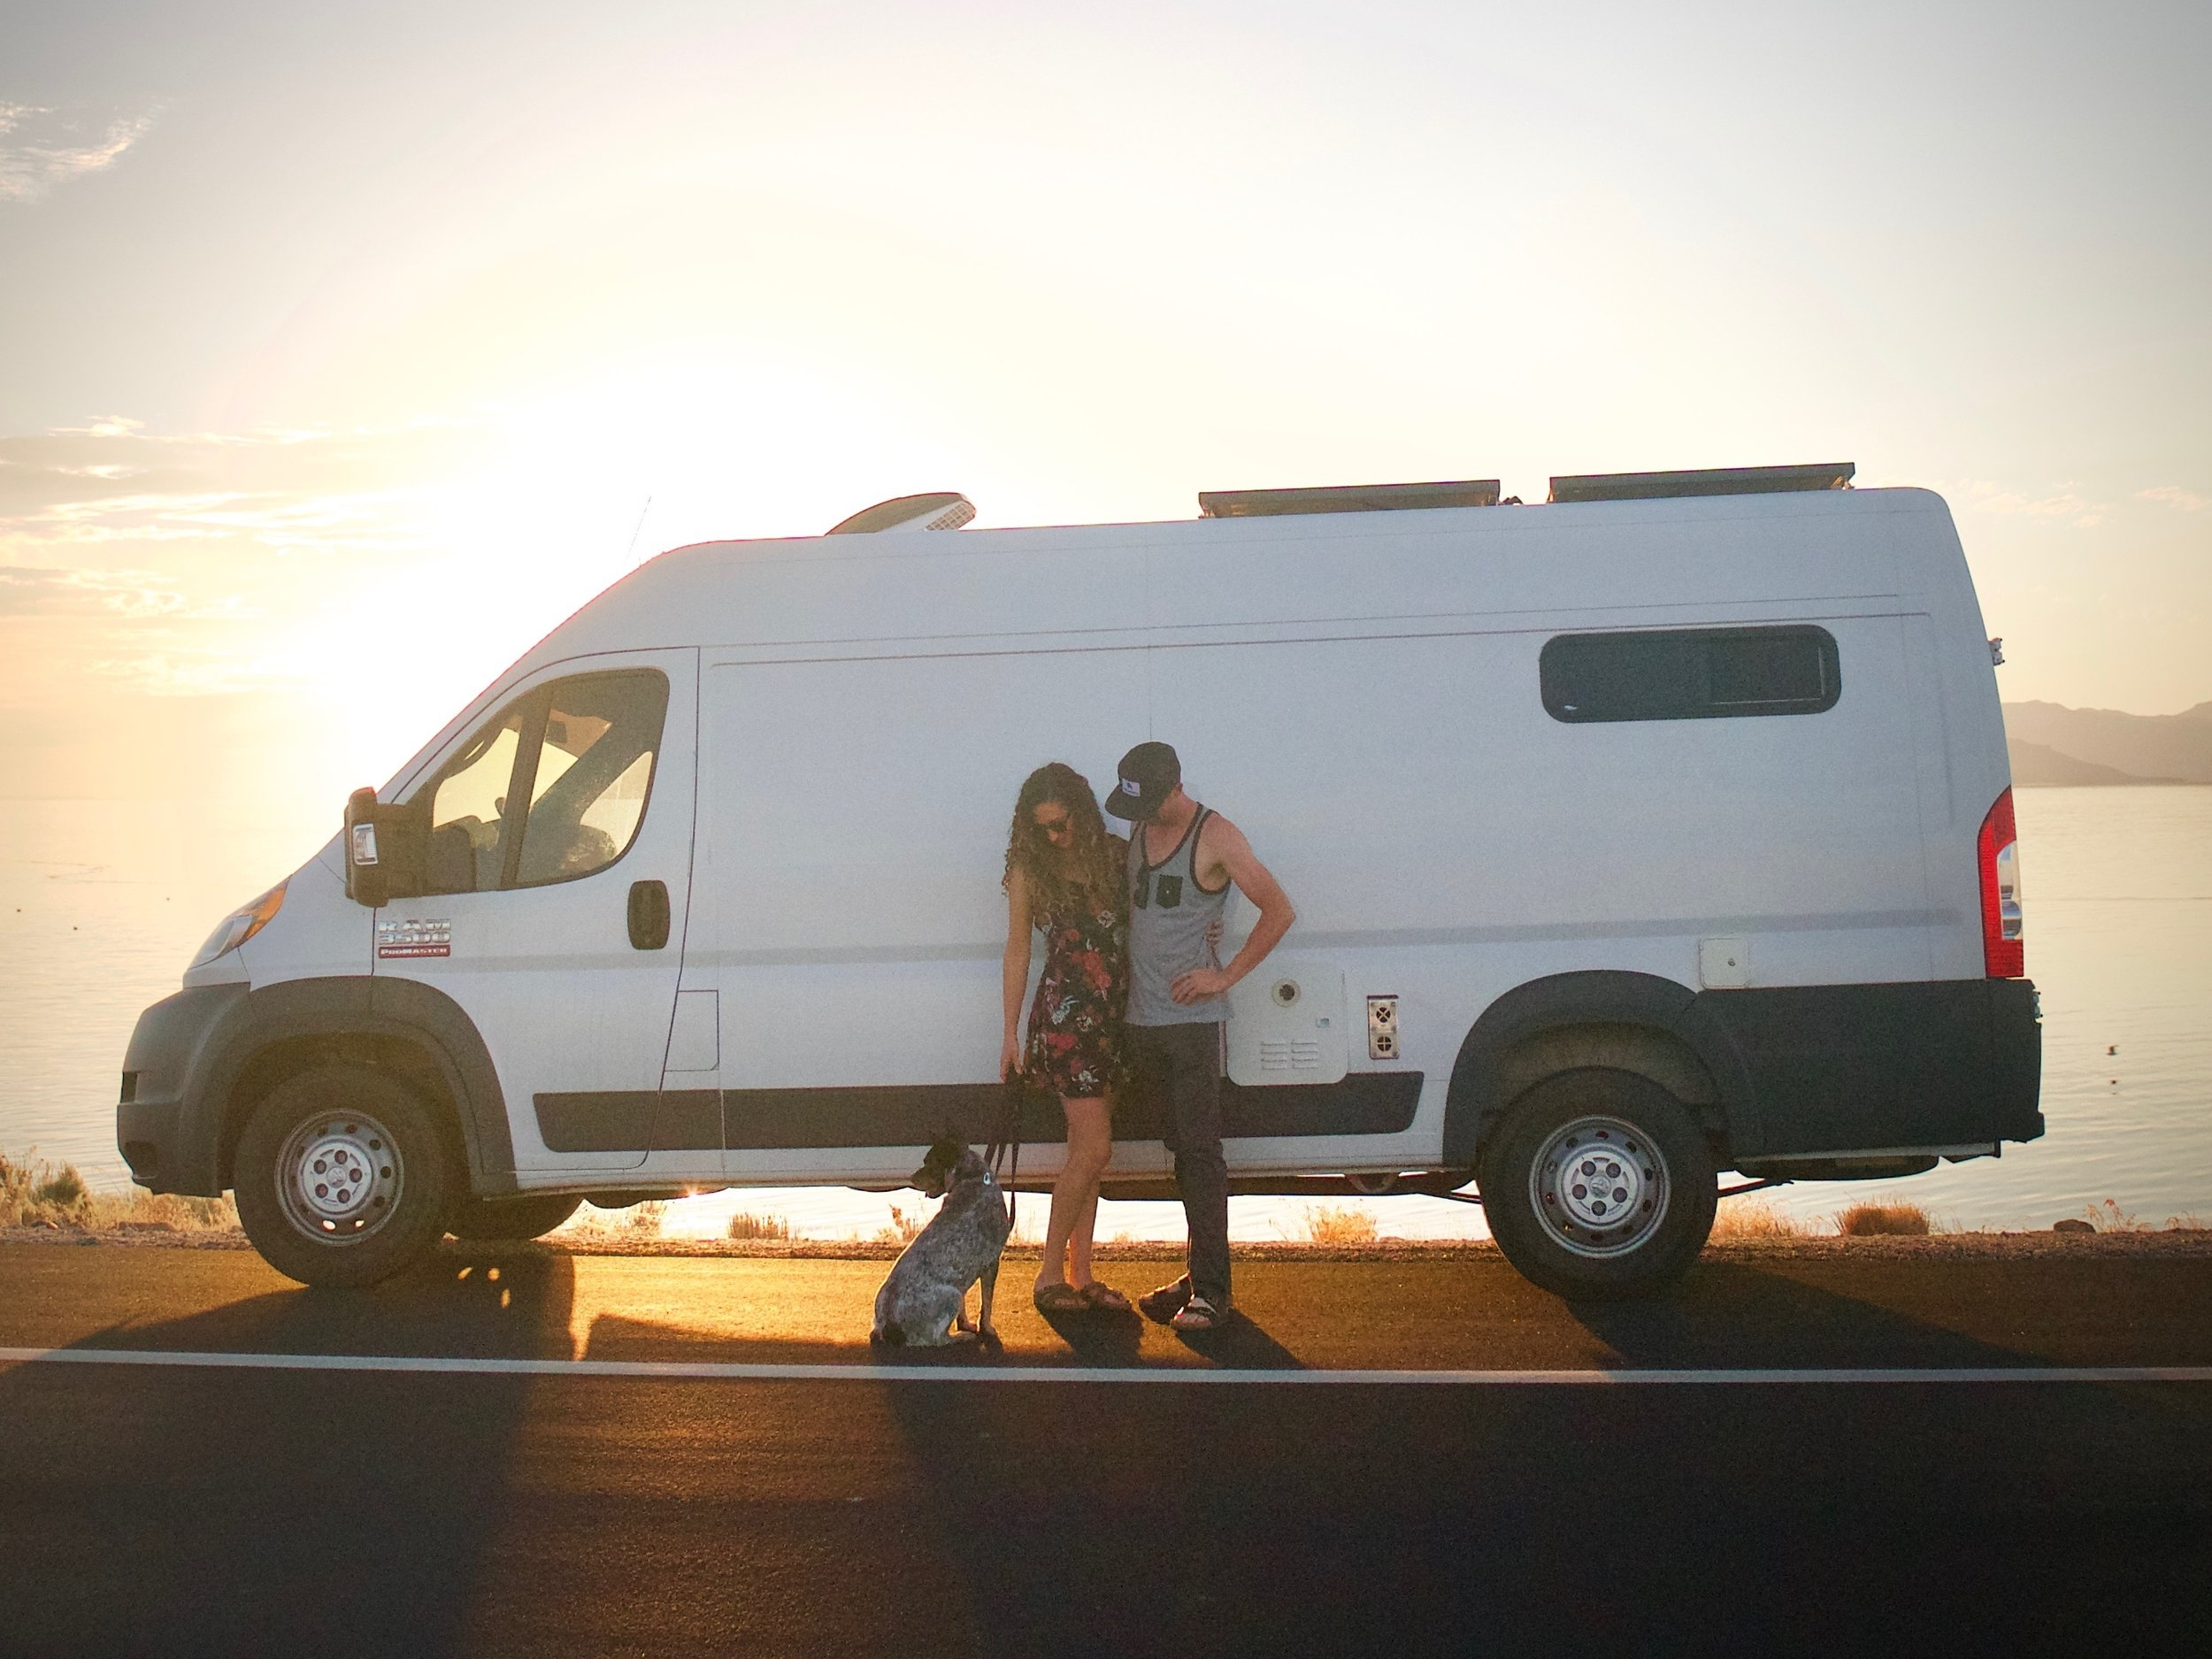 "Trent And Allie - Meet Trent and Allie, full-time Van Lifers living and sharing their journey in their self-converted 159"" extended RAM Promaster van conversion with their four-pawed friend, Frank!"